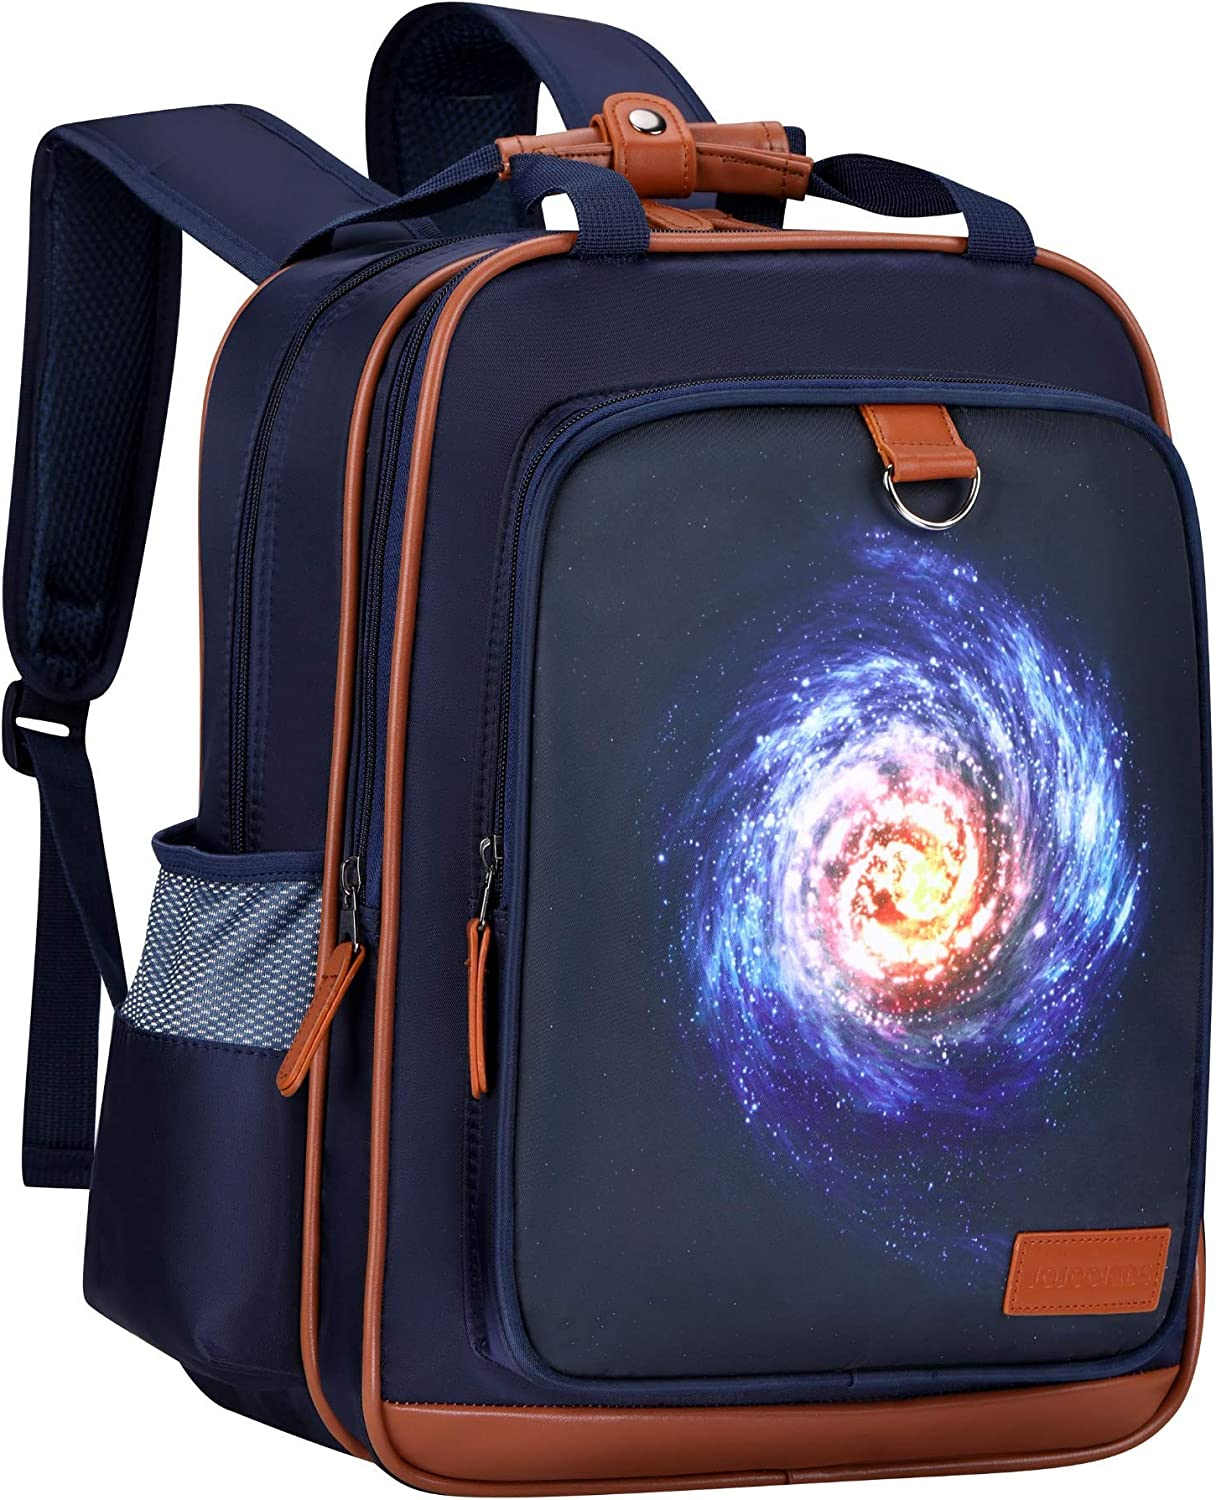 Galaxy Backpack for Kids 15"